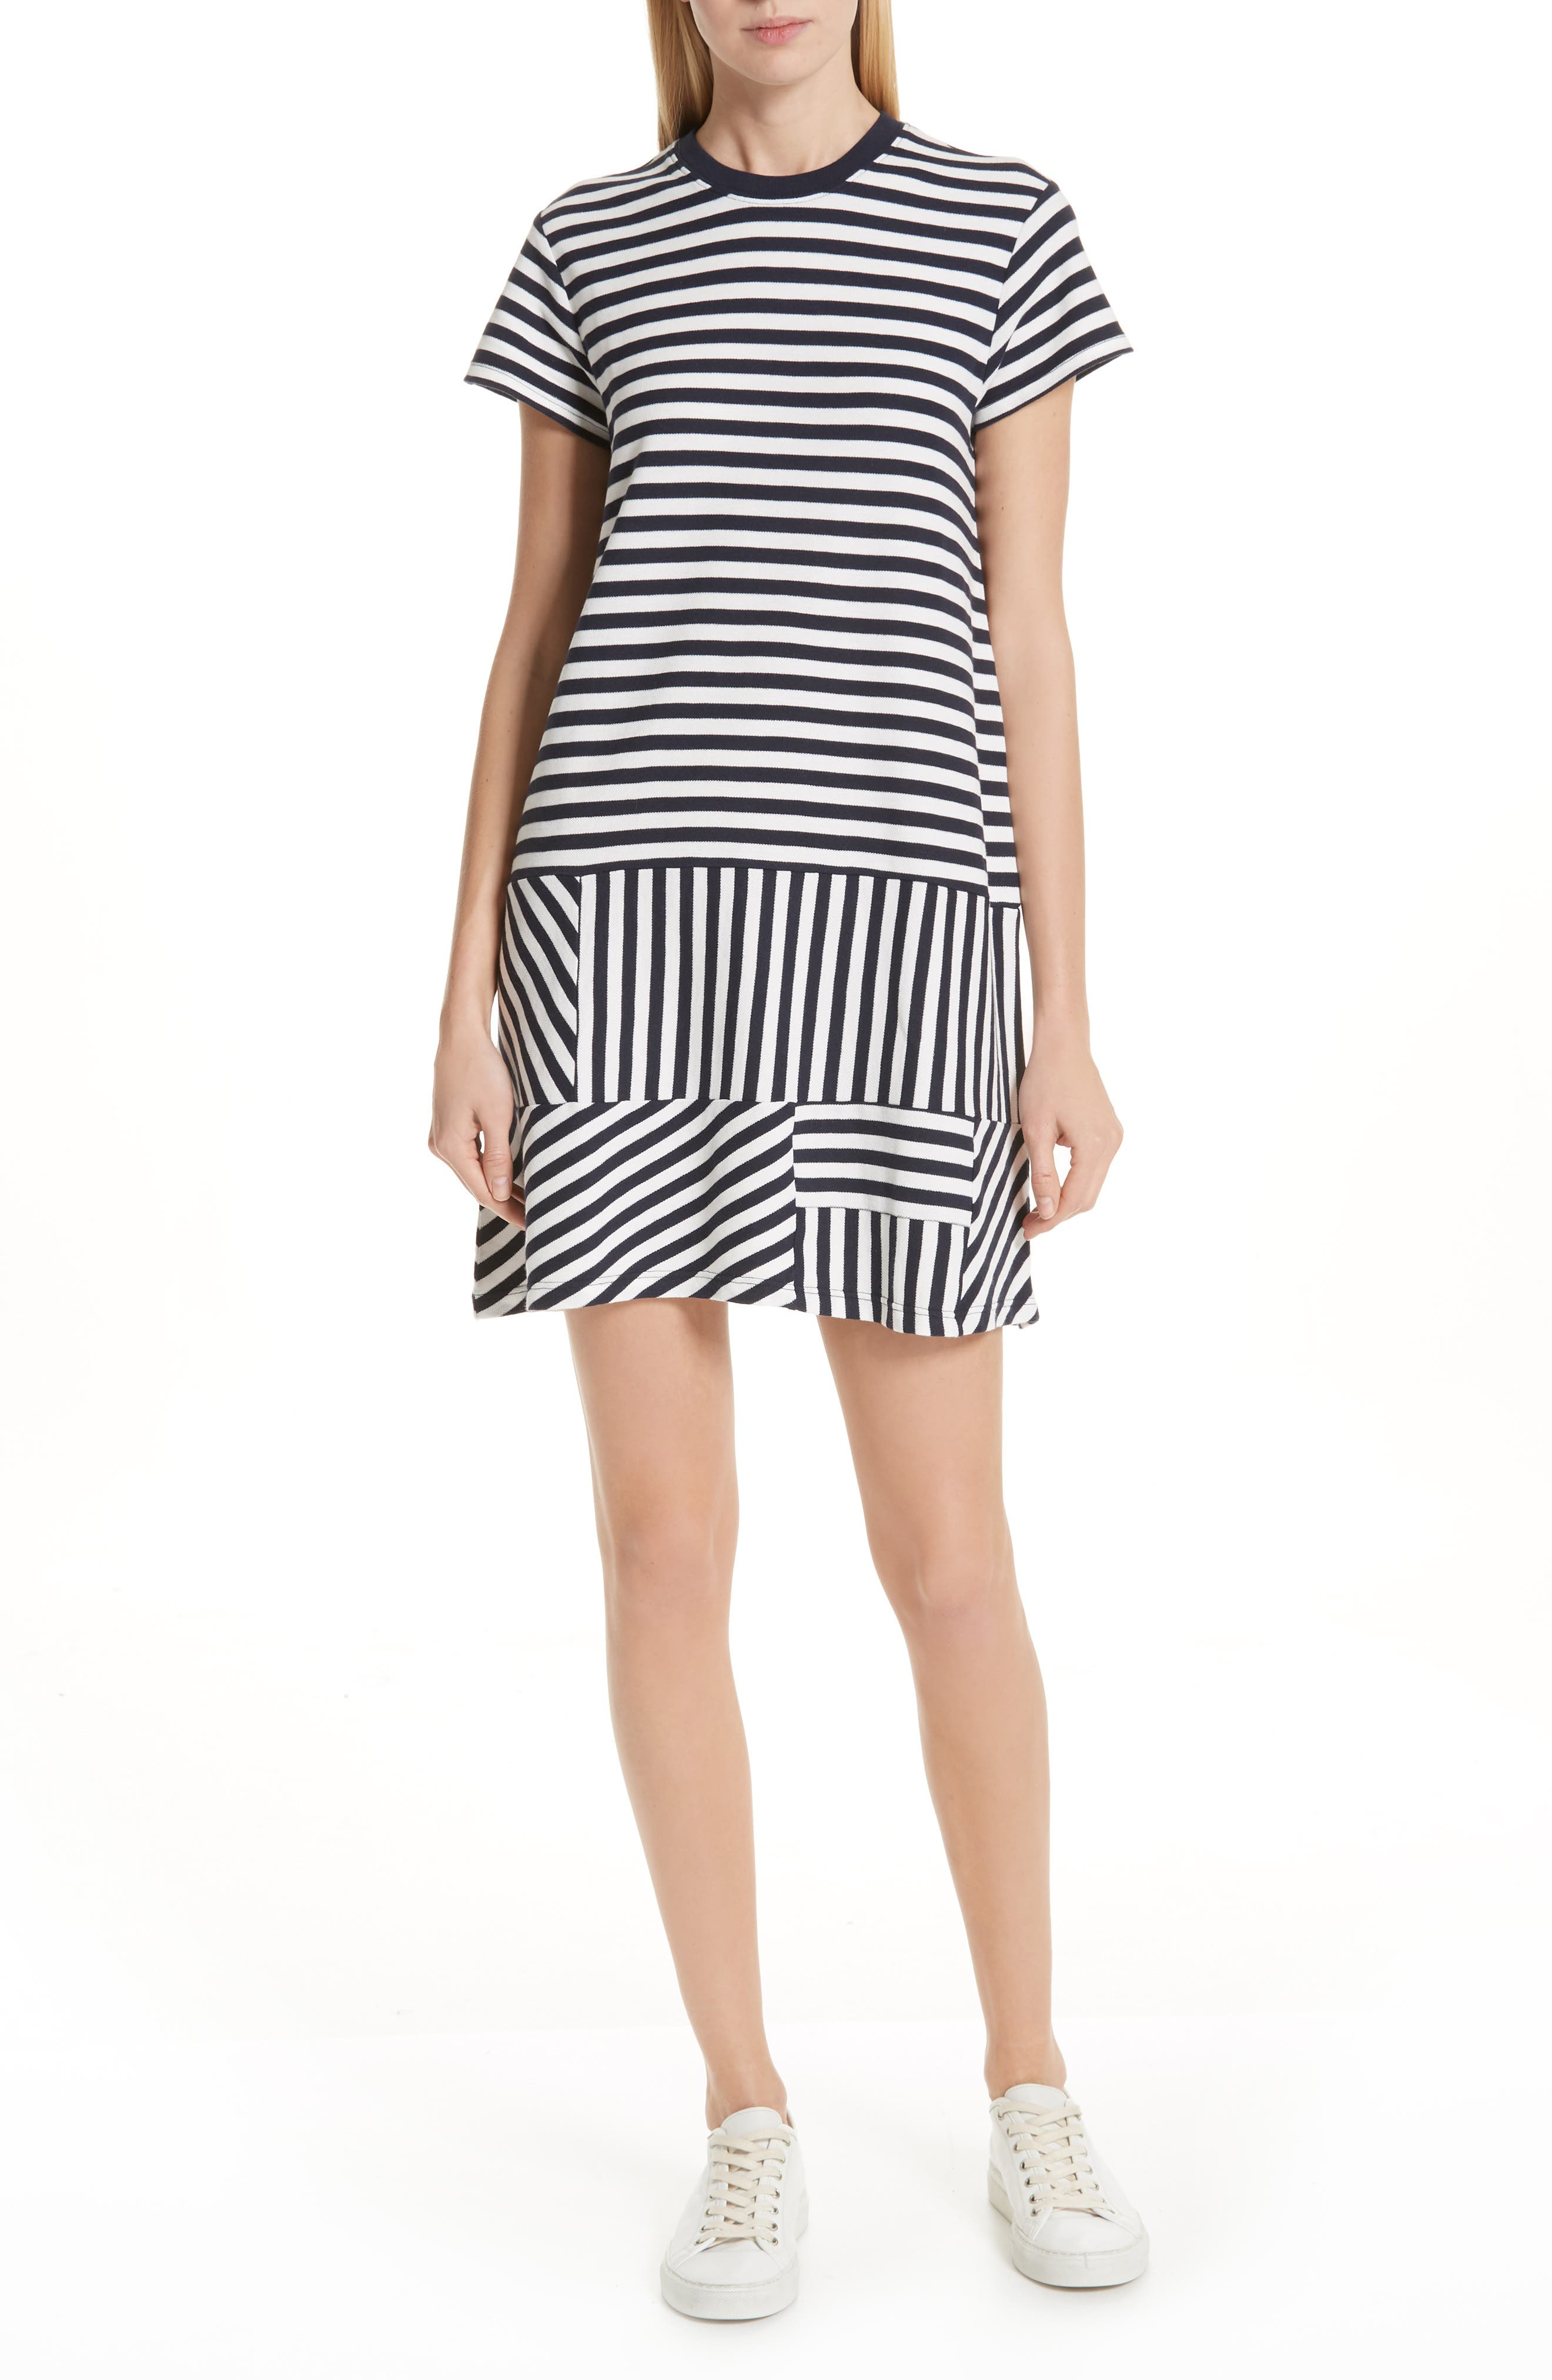 Atm Anthony Thomas Melillo Mixed Stripe Drop Waist Dress, White